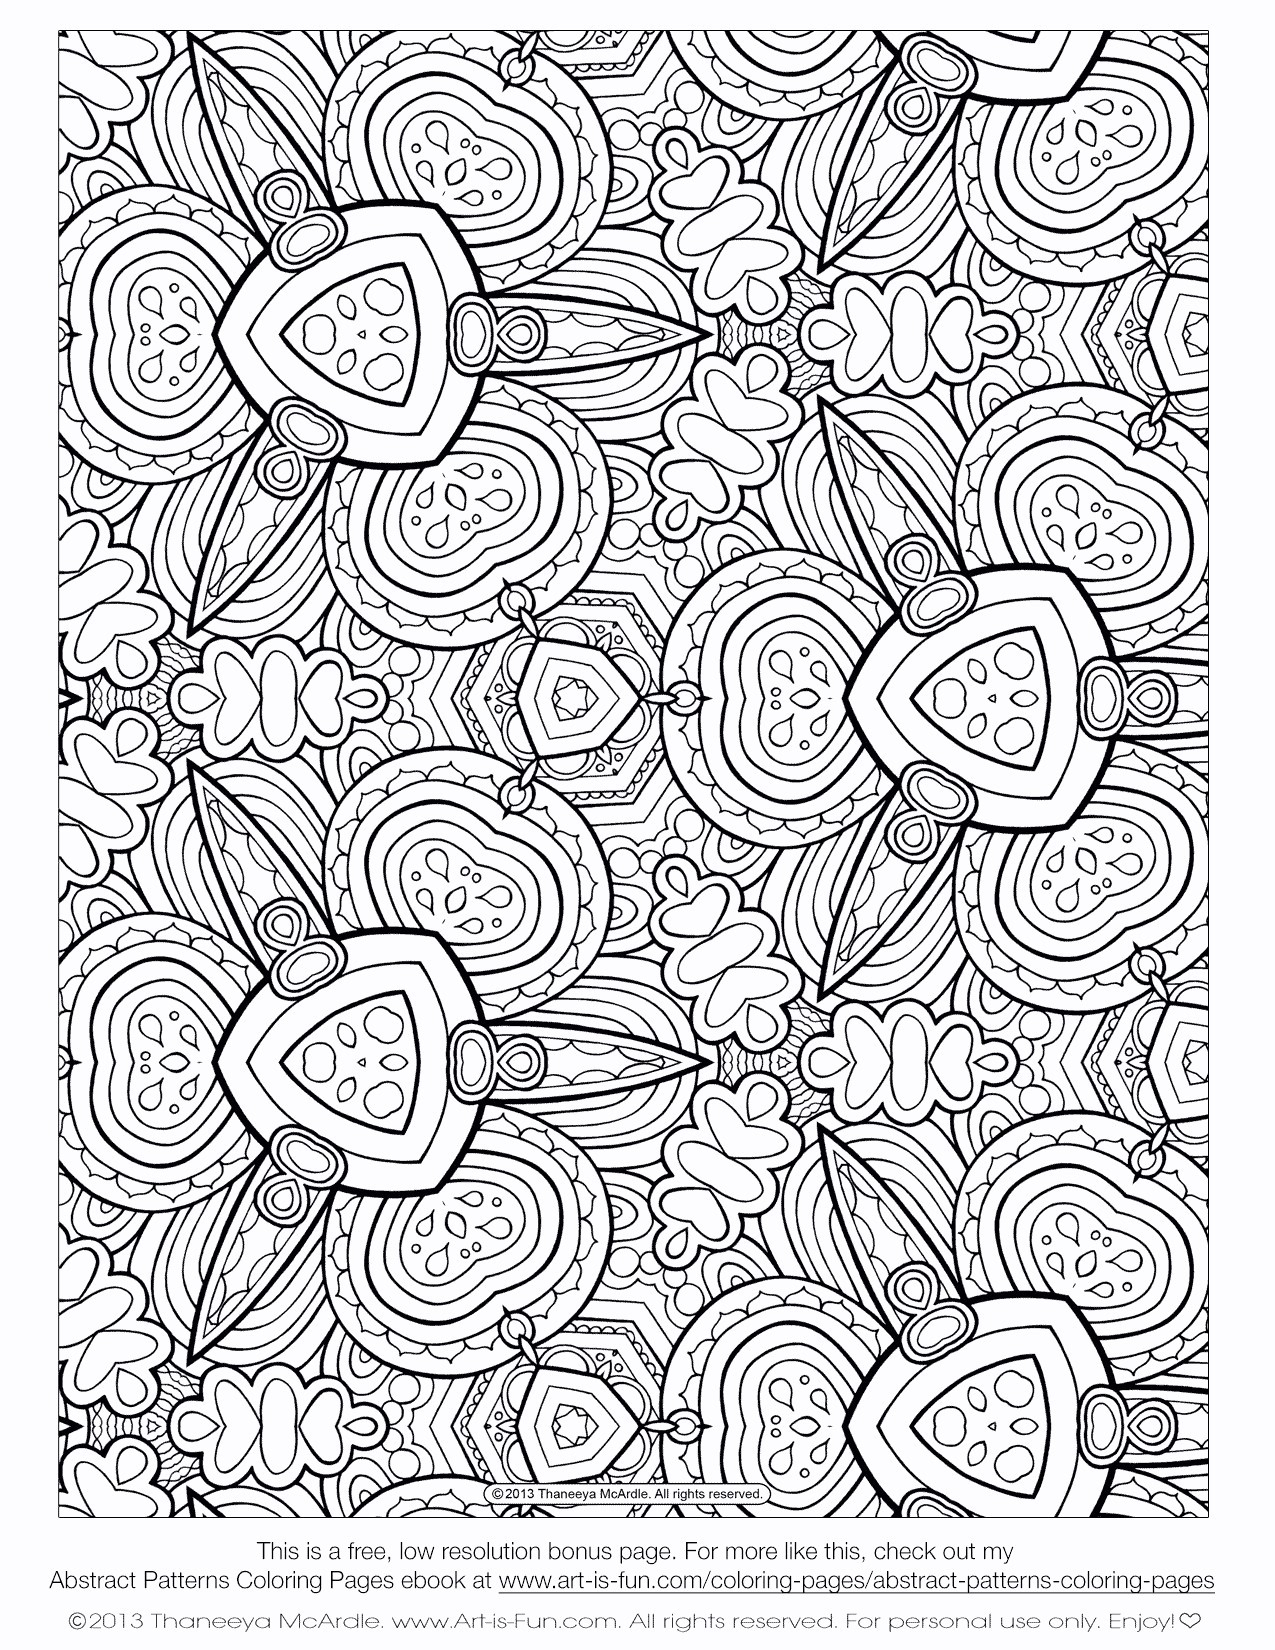 October Coloring Pages  Printable 9p - To print for your project